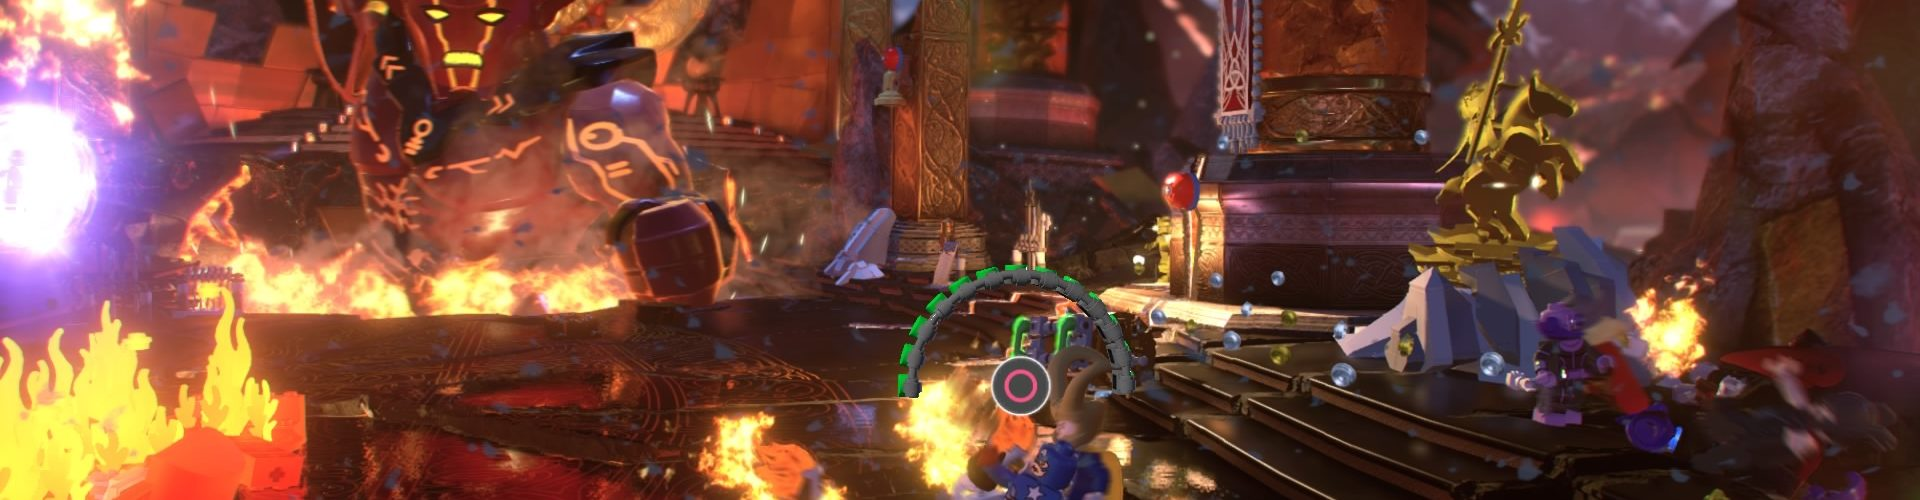 LEGO Marvel Superheroes 2 - PS4 Review - PlayStation Country